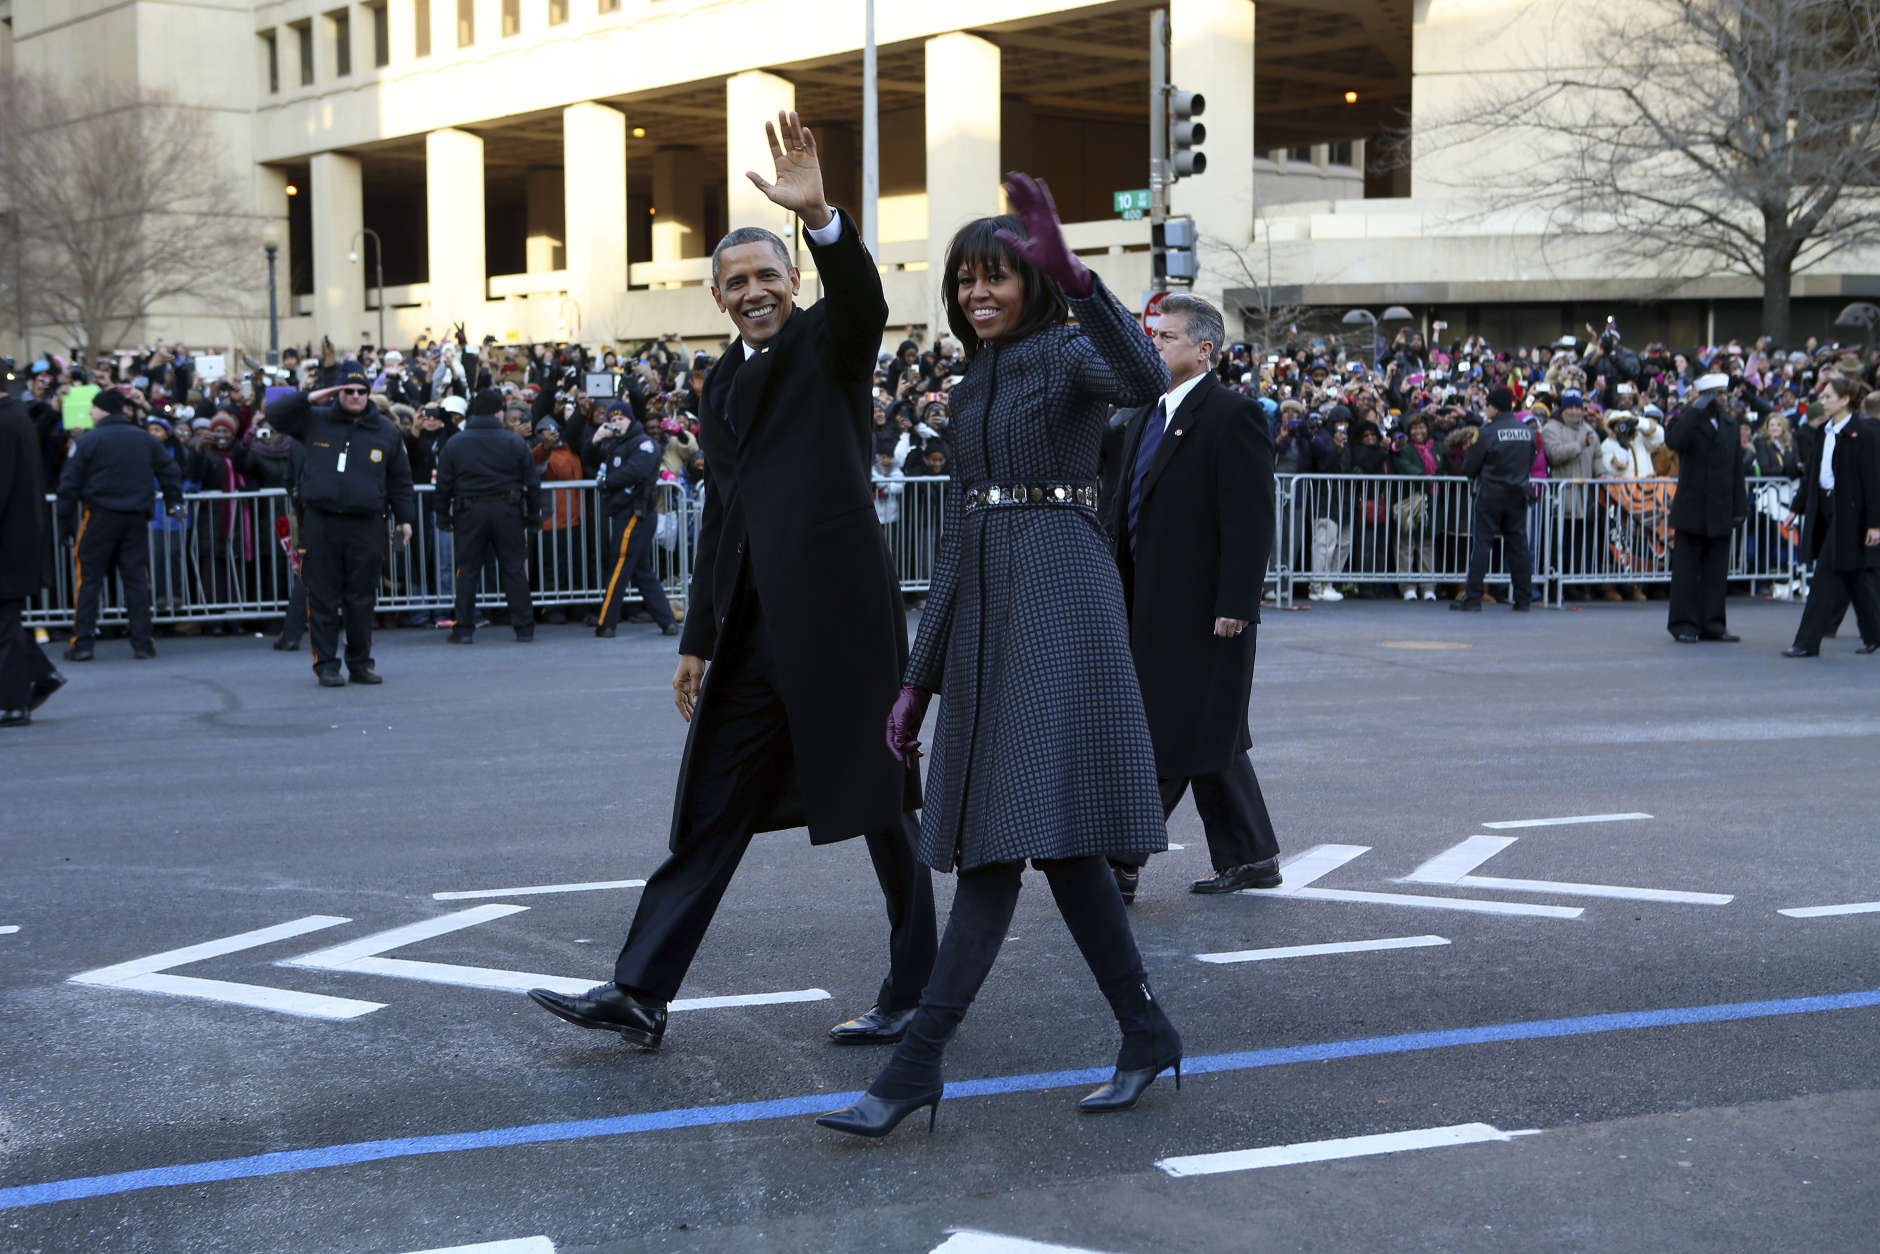 President Barack Obama and first lady Michelle Obama wave as they walk down Pennsylvania Avenue in Washington, Monday, Jan. 21, 2013, during the inaugural parade route , after his ceremonial swearing-in on Capitol Hill during the 57th Presidential Inauguration. (AP Photo/New York Times, Doug Mills, Pool)